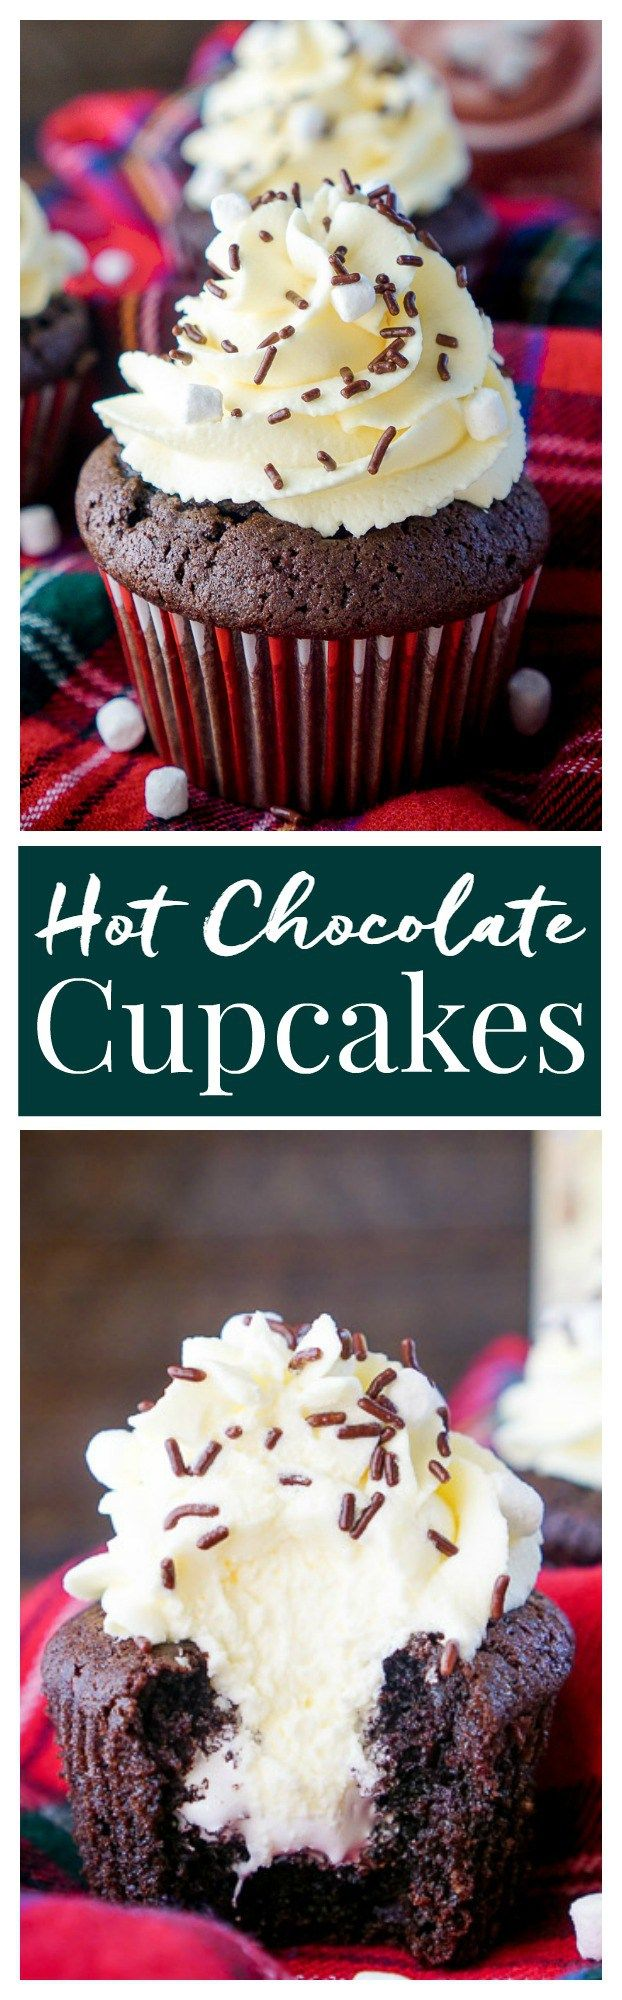 These Hot Chocolate Cupcakes are made with actual hot chocolate in the batter, filled with marshmallow fluff, and finished with a vanilla whipped cream frosting! They're everything you love about the classic drink in cupcake form, a perfect winter and holiday dessert! #ShareYourDelight @InDelight ad